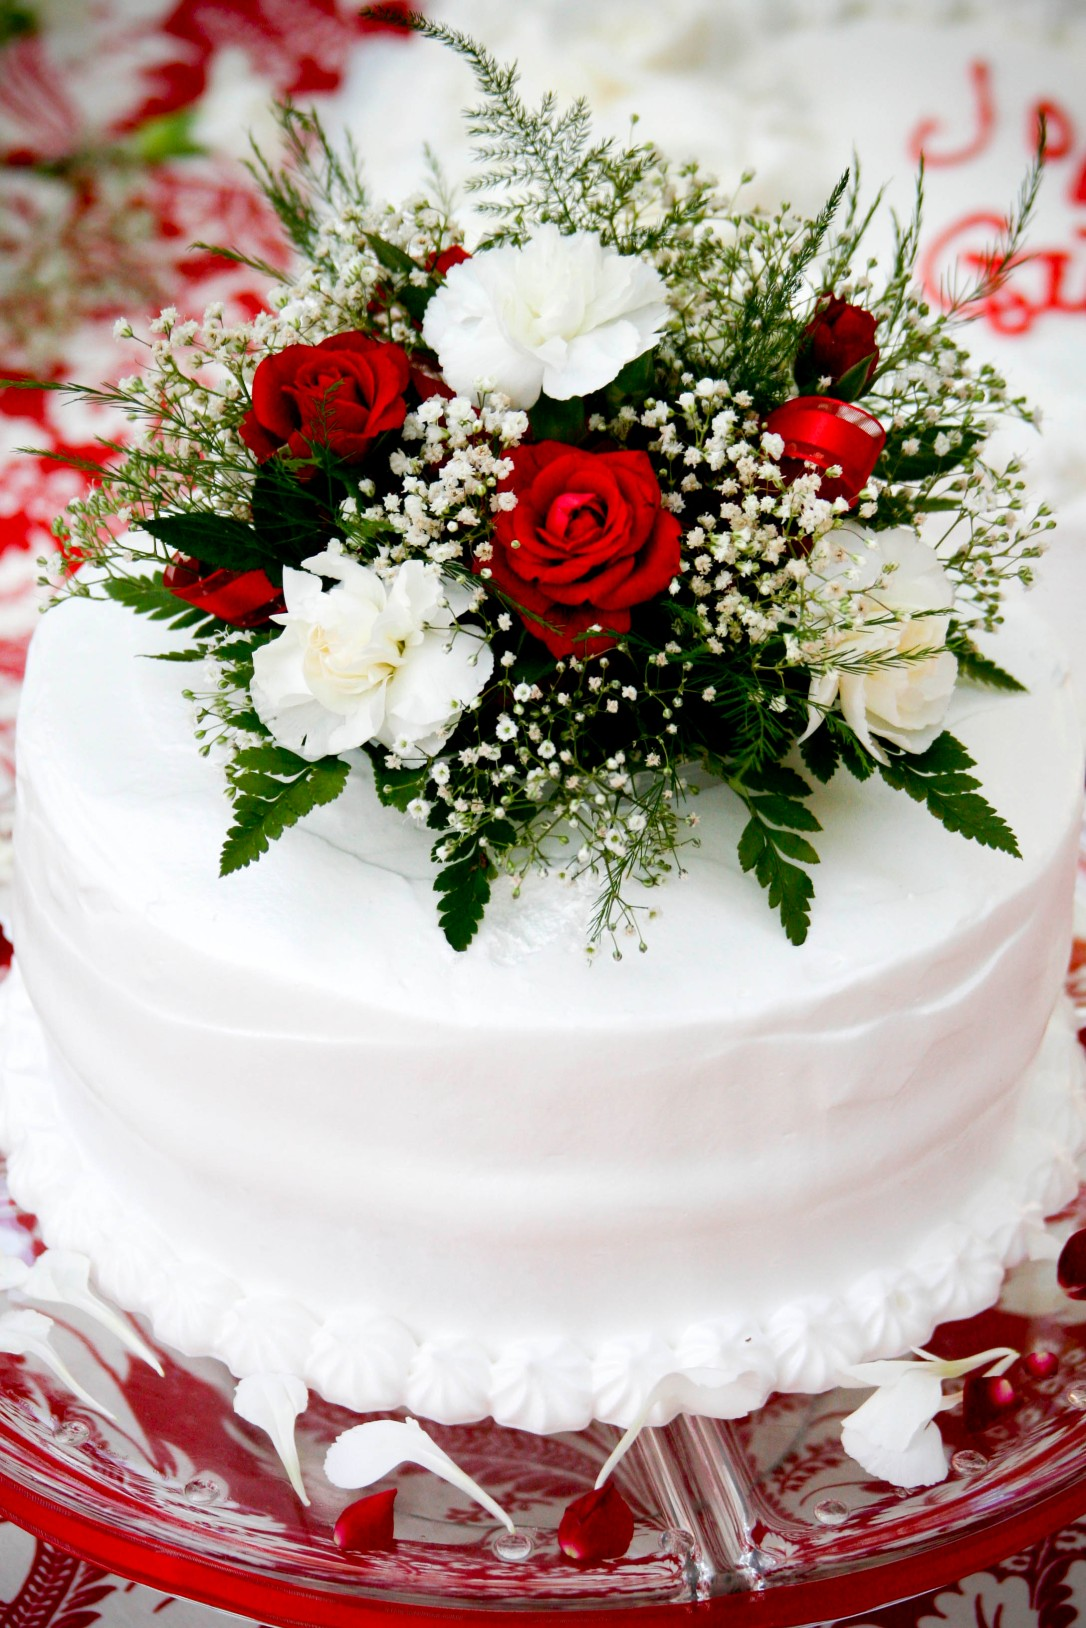 Wedding cake on red damask tablecloth